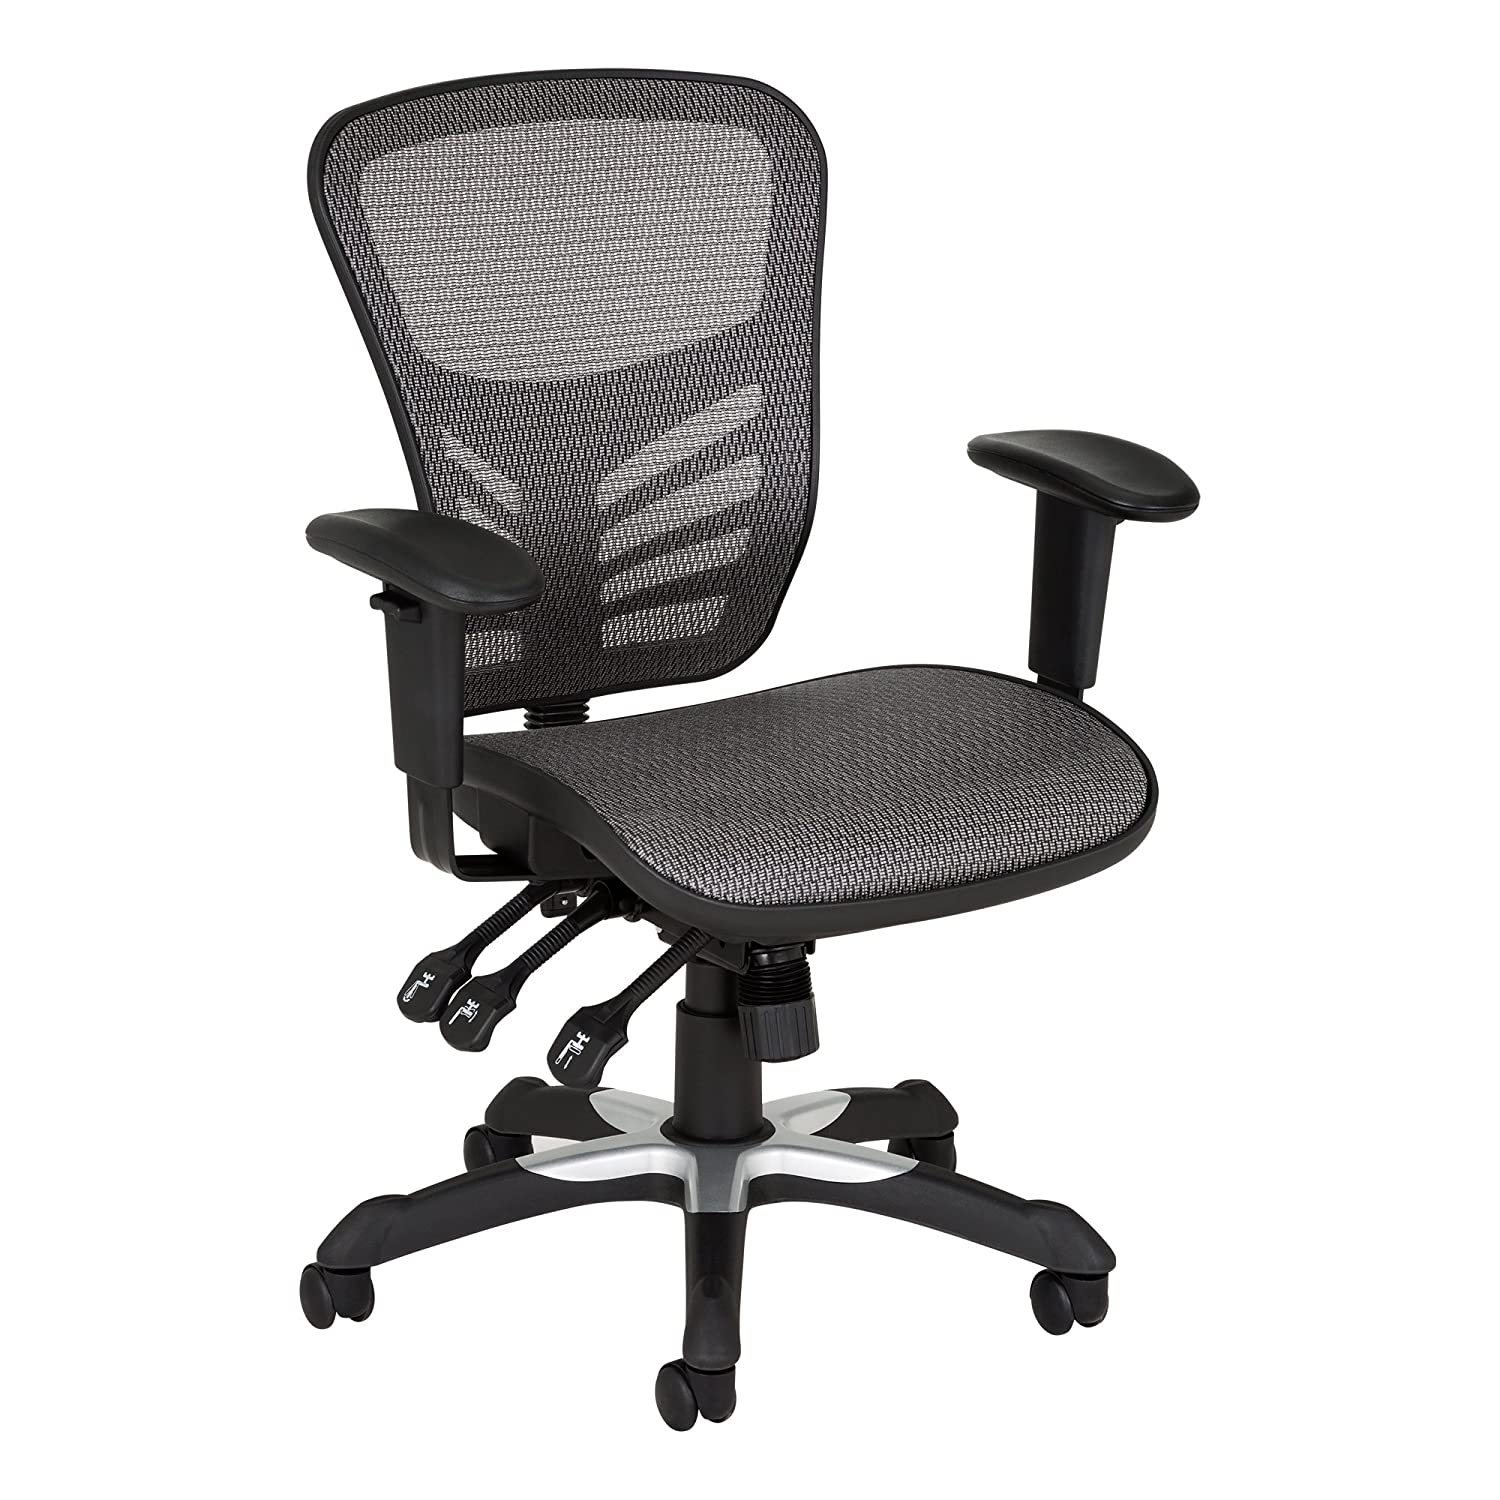 Norwood Commercial Furniture NOR-IAH3040-SO Adjustable-Height Mesh Office Chair